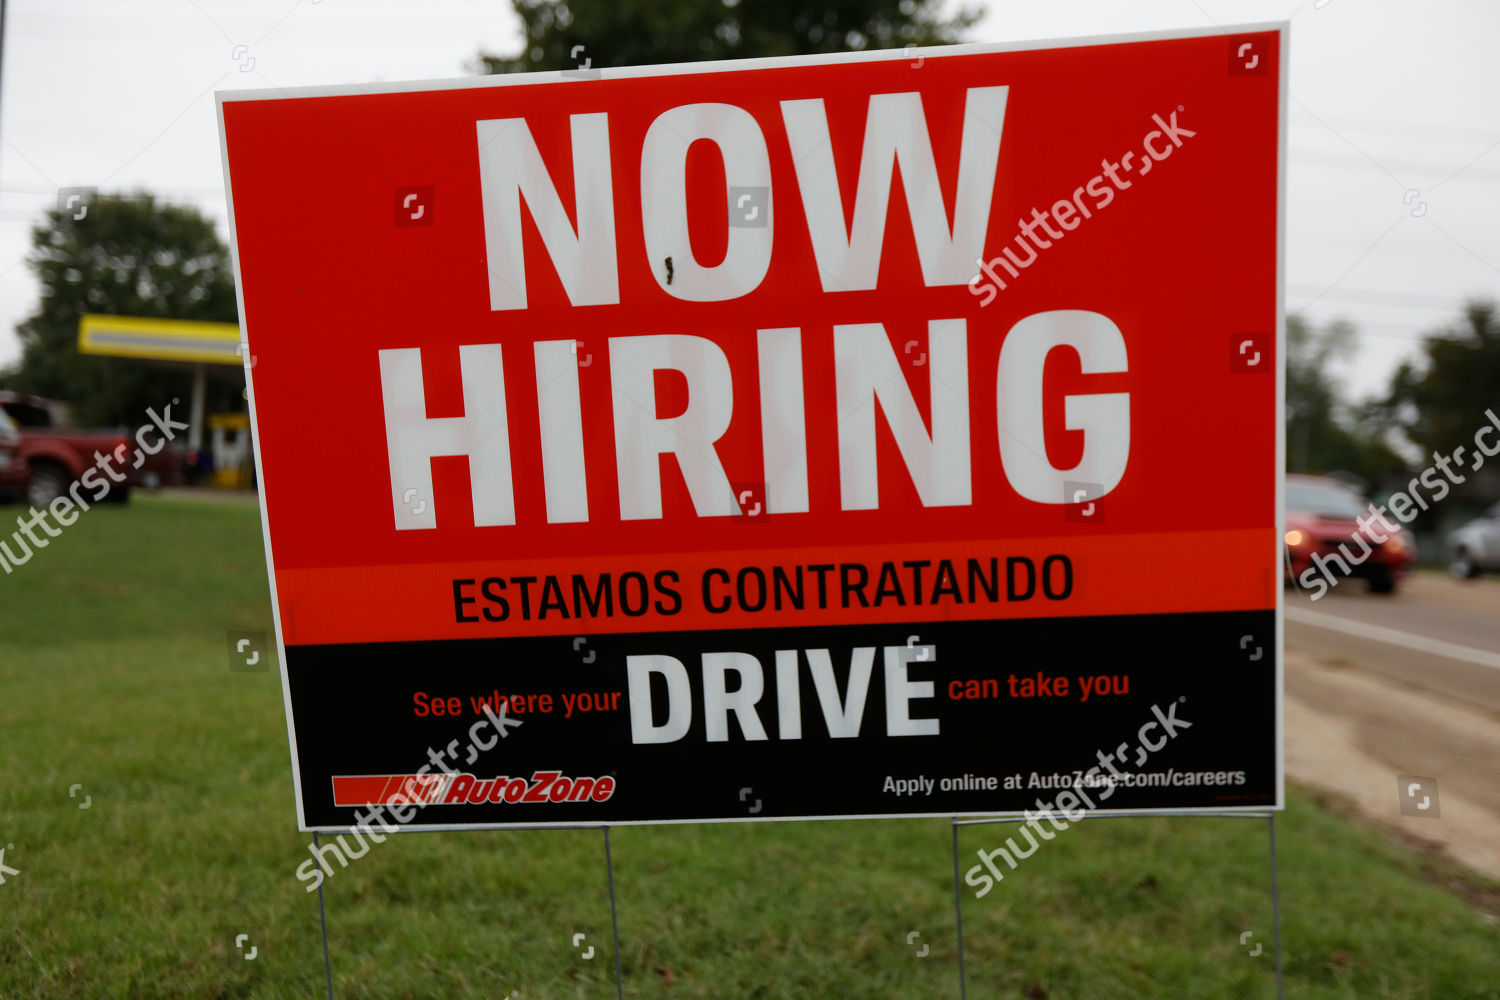 bilingual help wanted sign Auto Zone retailer Editorial